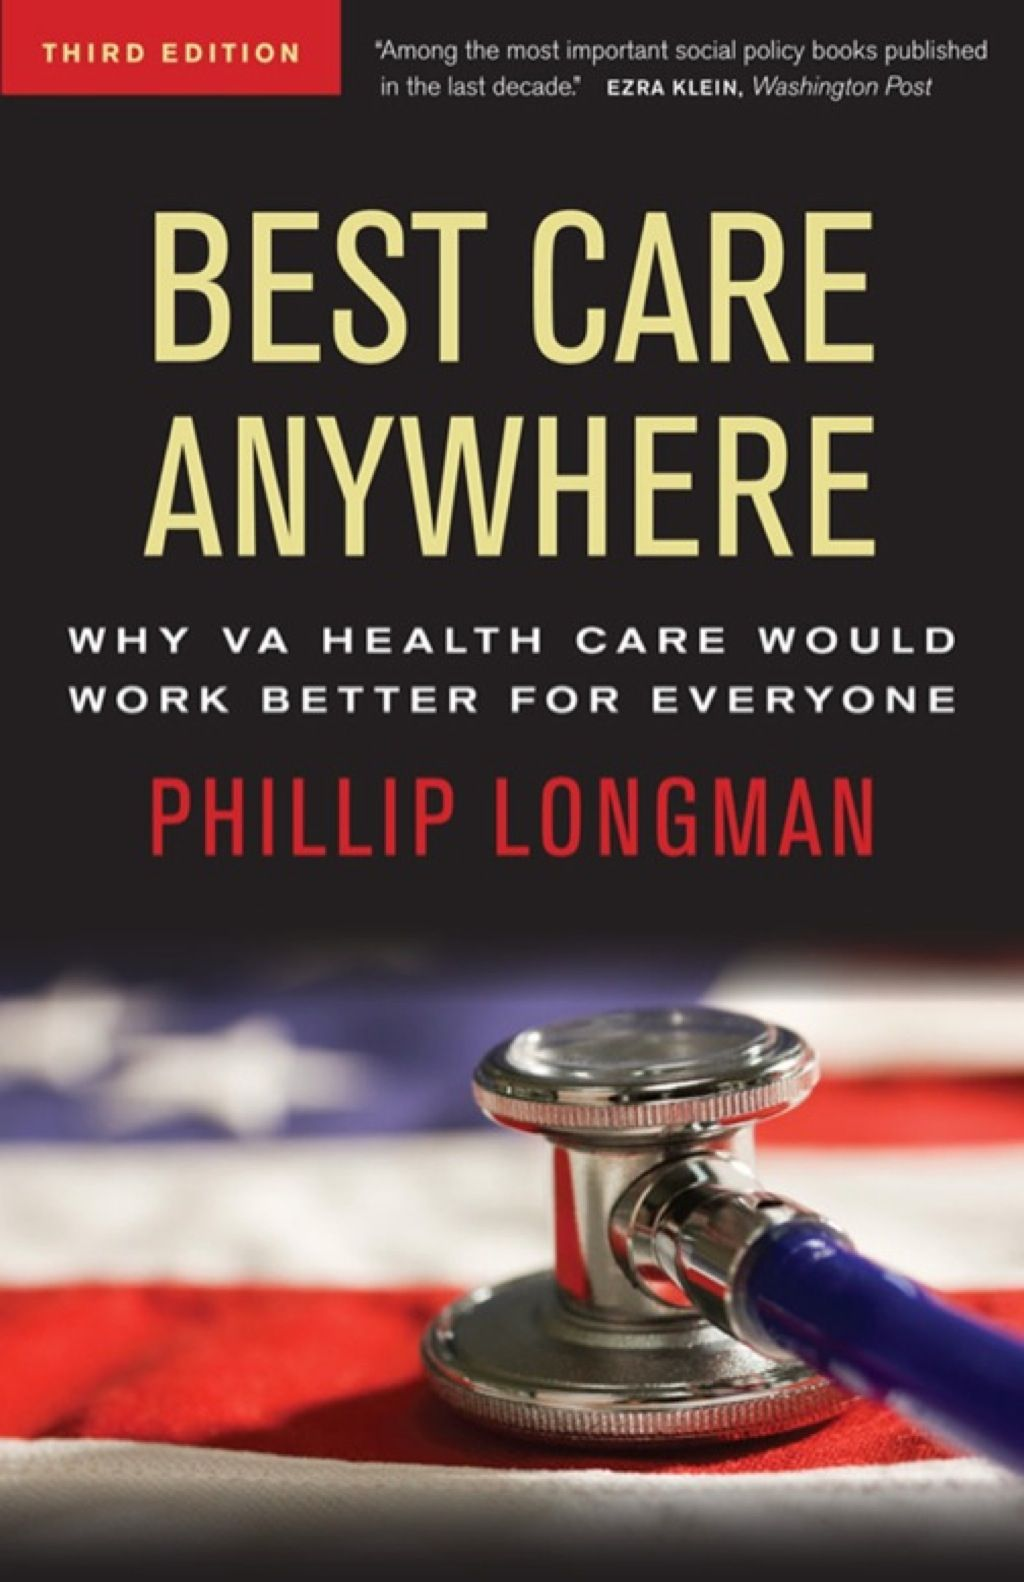 Best Care Anywhere Why VA Health Care Would Work Better